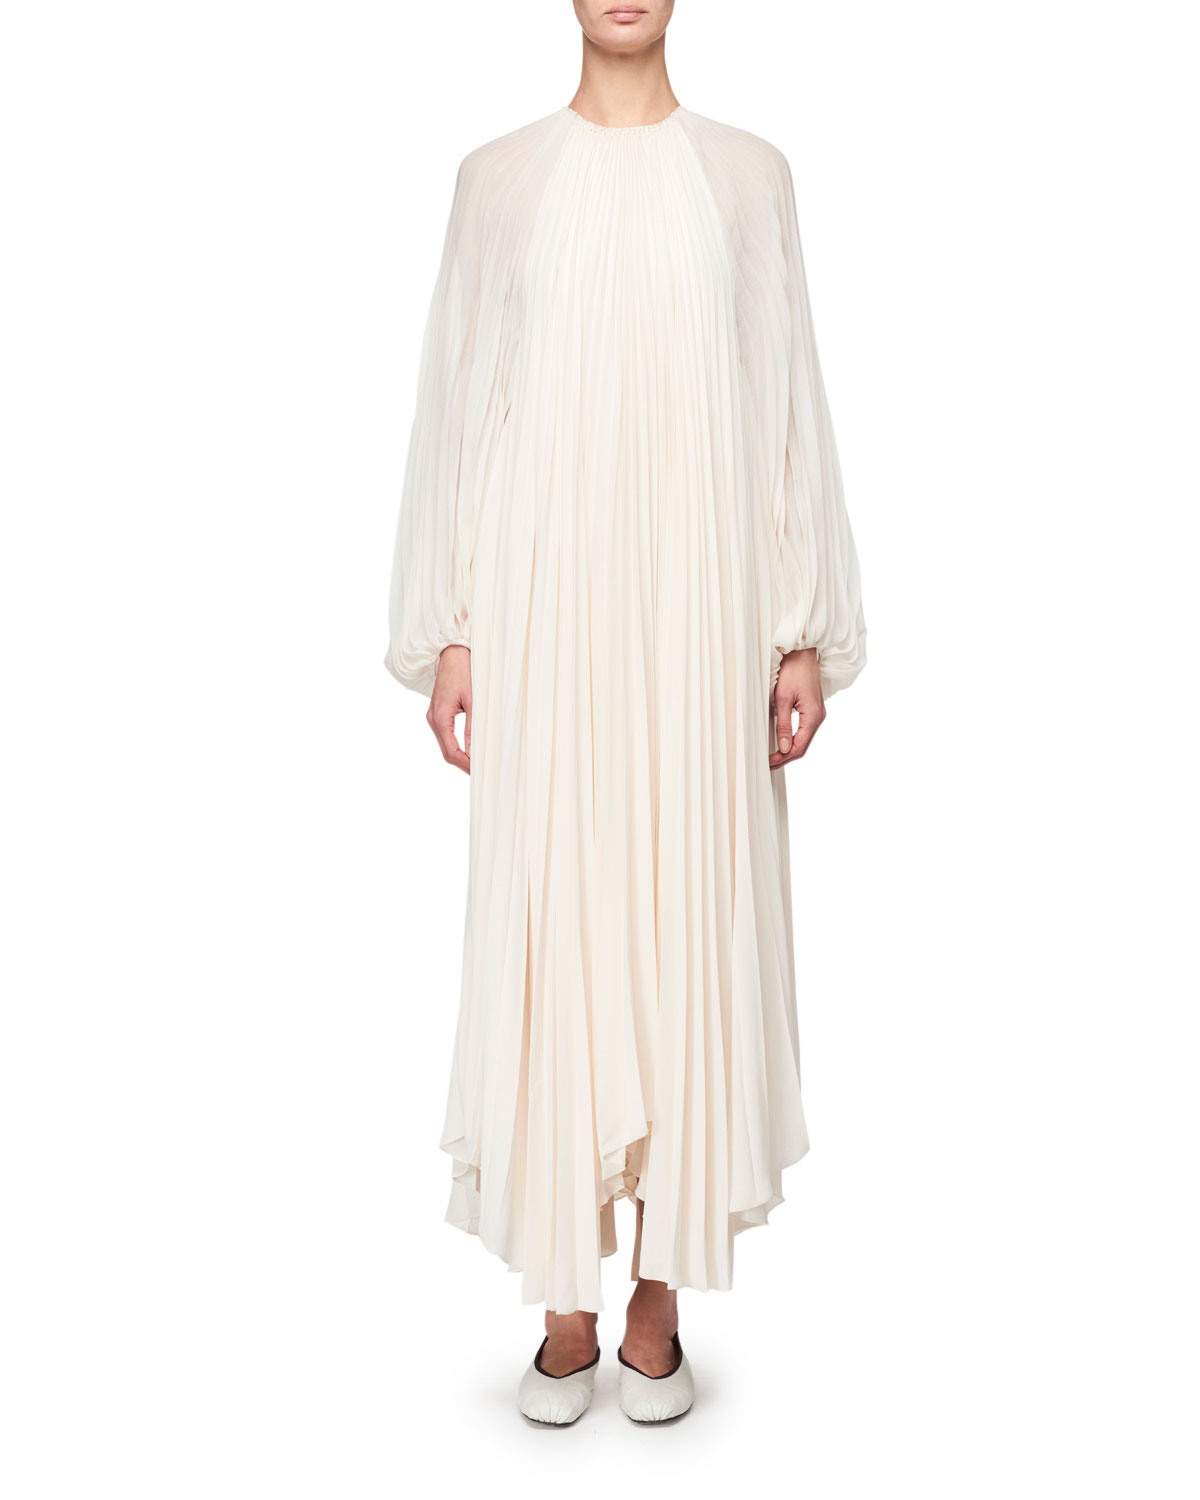 Martina Knife Pleated Full-Sleeve Dress by The Row, available on neimanmarcus.com for $6150 Angelina Jolie Dress Exact Product